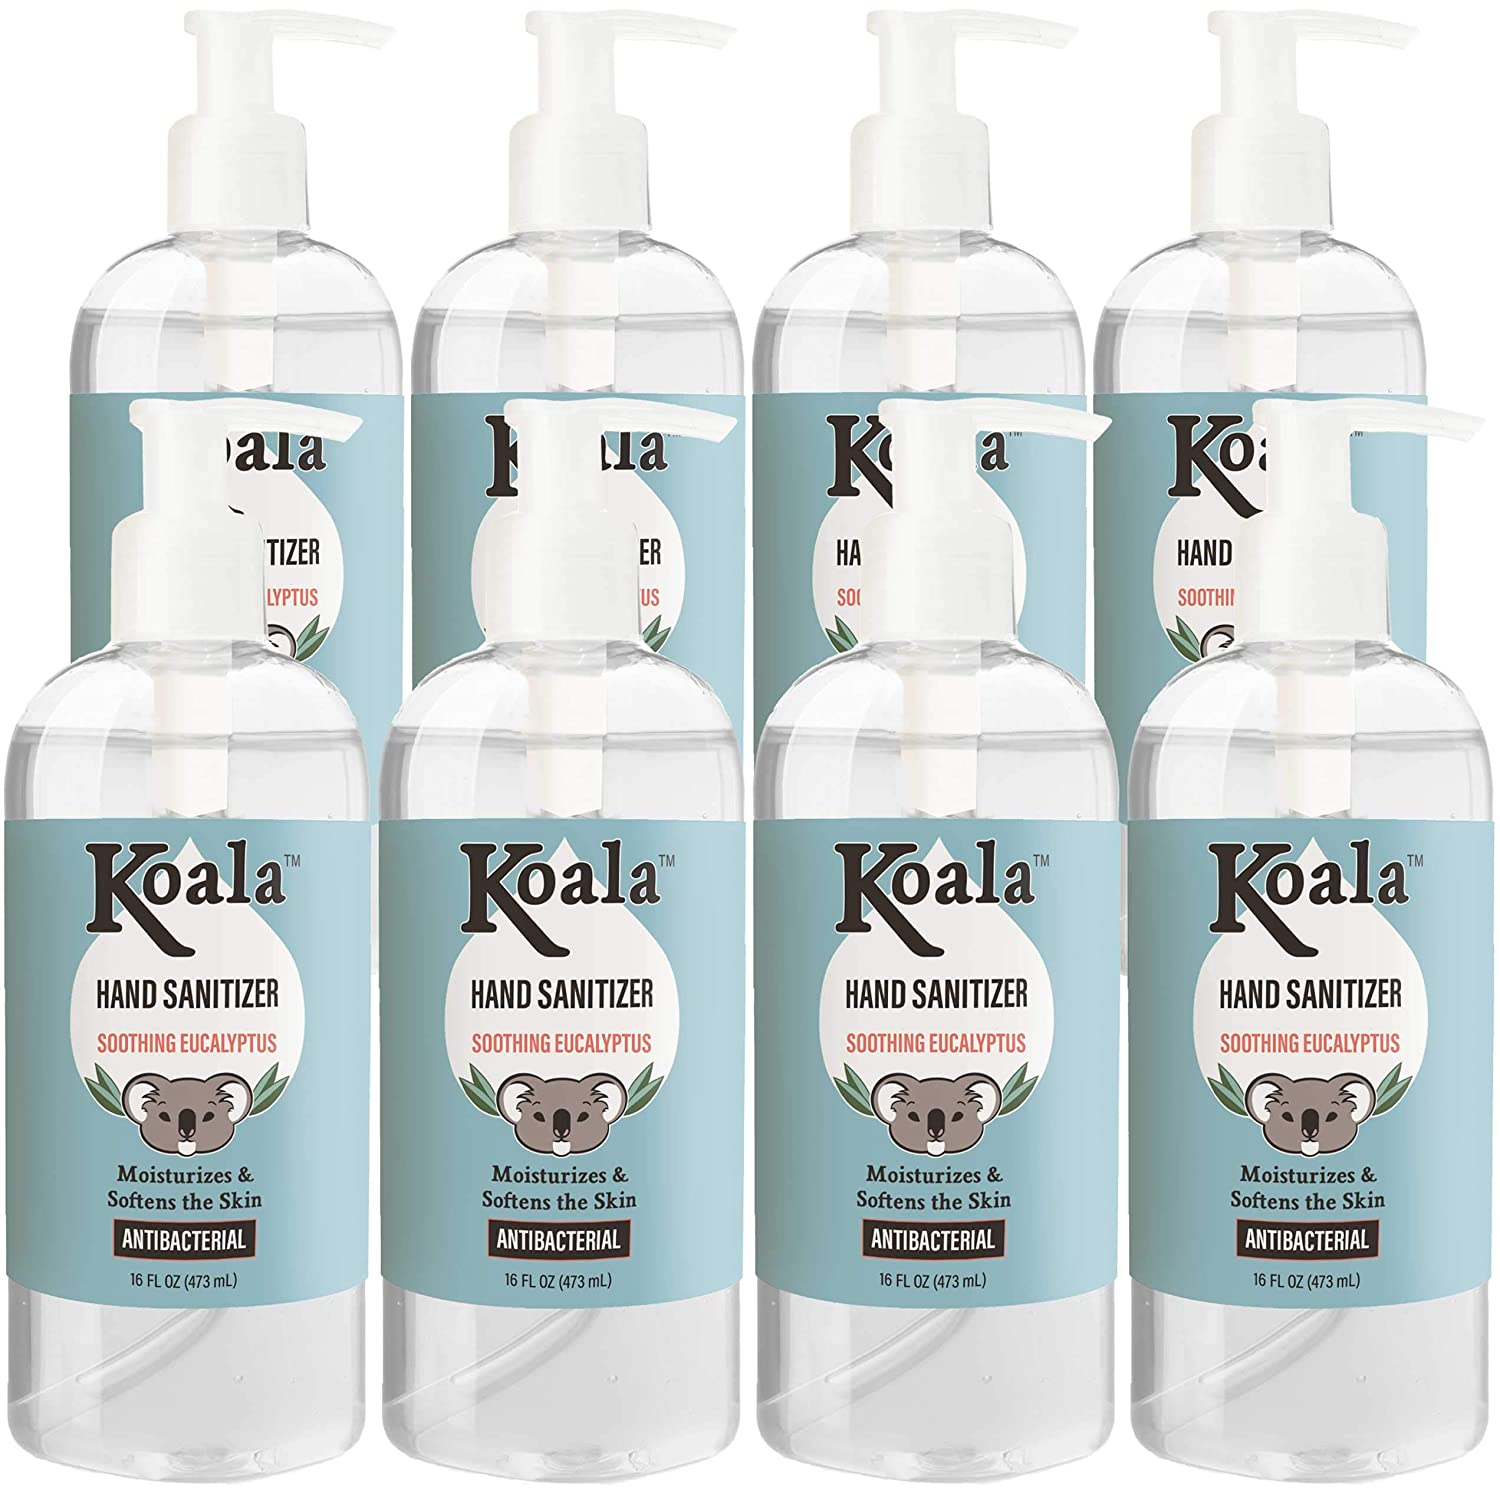 Koala Moisturizing Hand Sanitizer Gel - 16 Oz, 8 Pack - Eucalyptus - 68% Ethyl Alcohol - Quick-Dry, No-Rinse Formula - Antibacterial Hand Sanitizing Gel Pump Bottle - Natural Ingredients - Made in USA